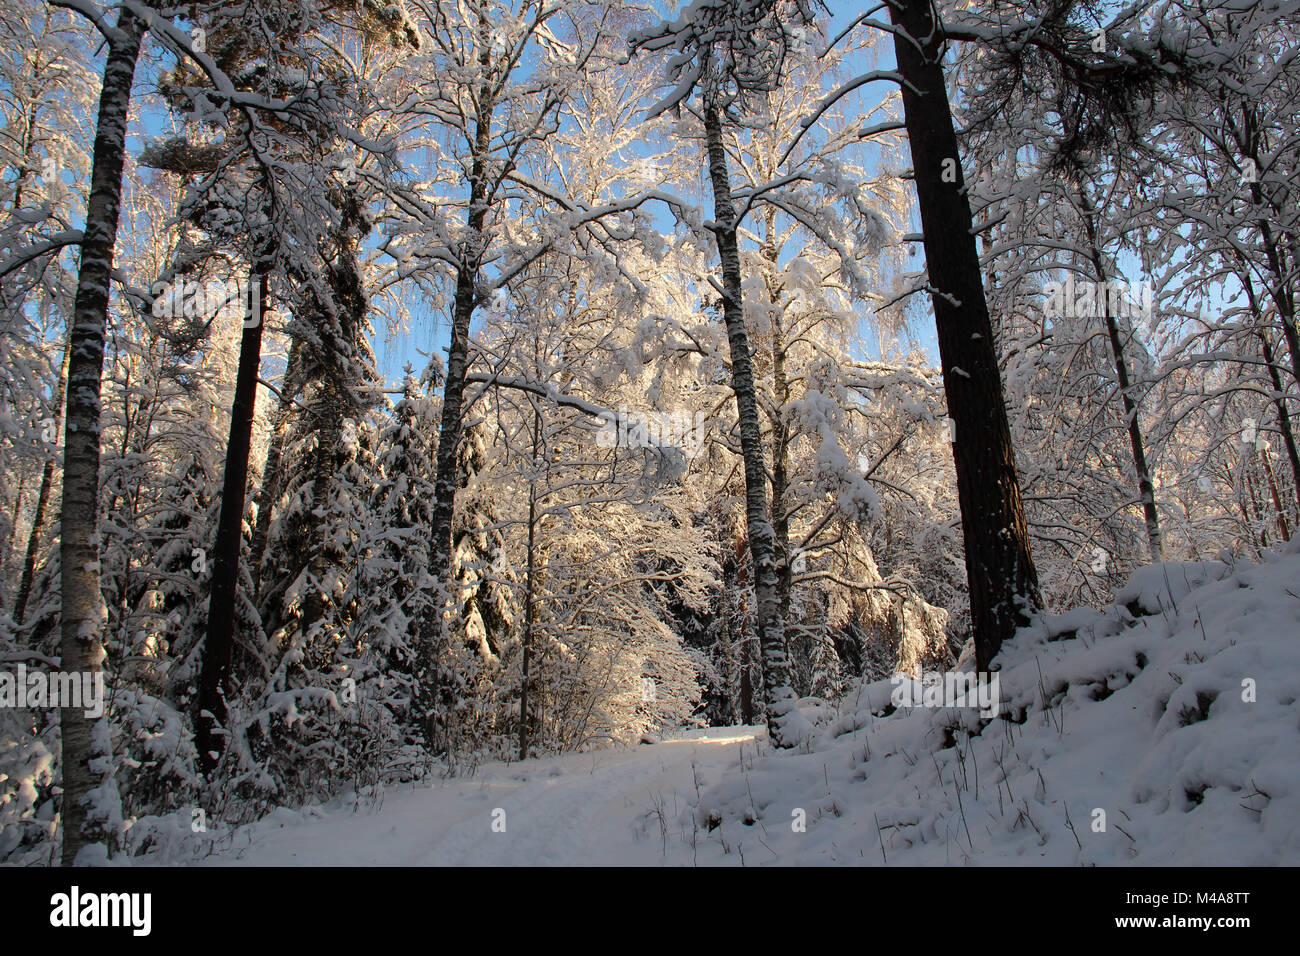 Footpath in a snowy forest on a sunny winter day. - Stock Image